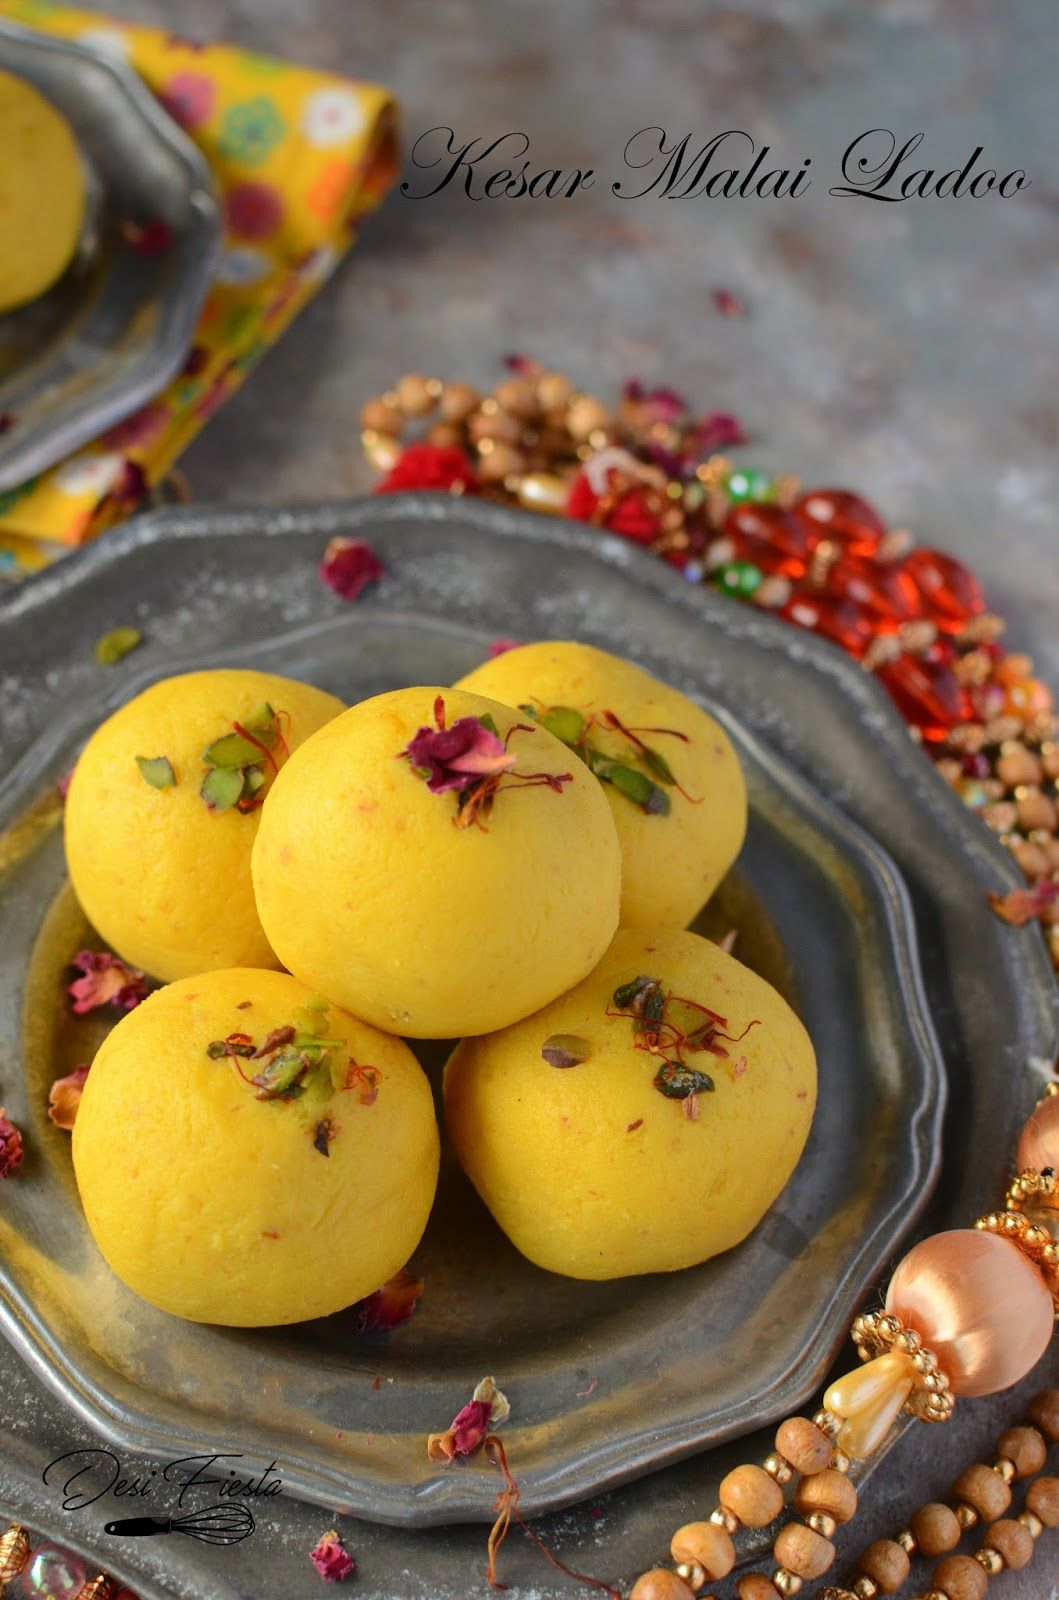 Kesar malai ladoo recipes healthy foods pinterest recipes and food food kesar malai ladoo recipes forumfinder Image collections